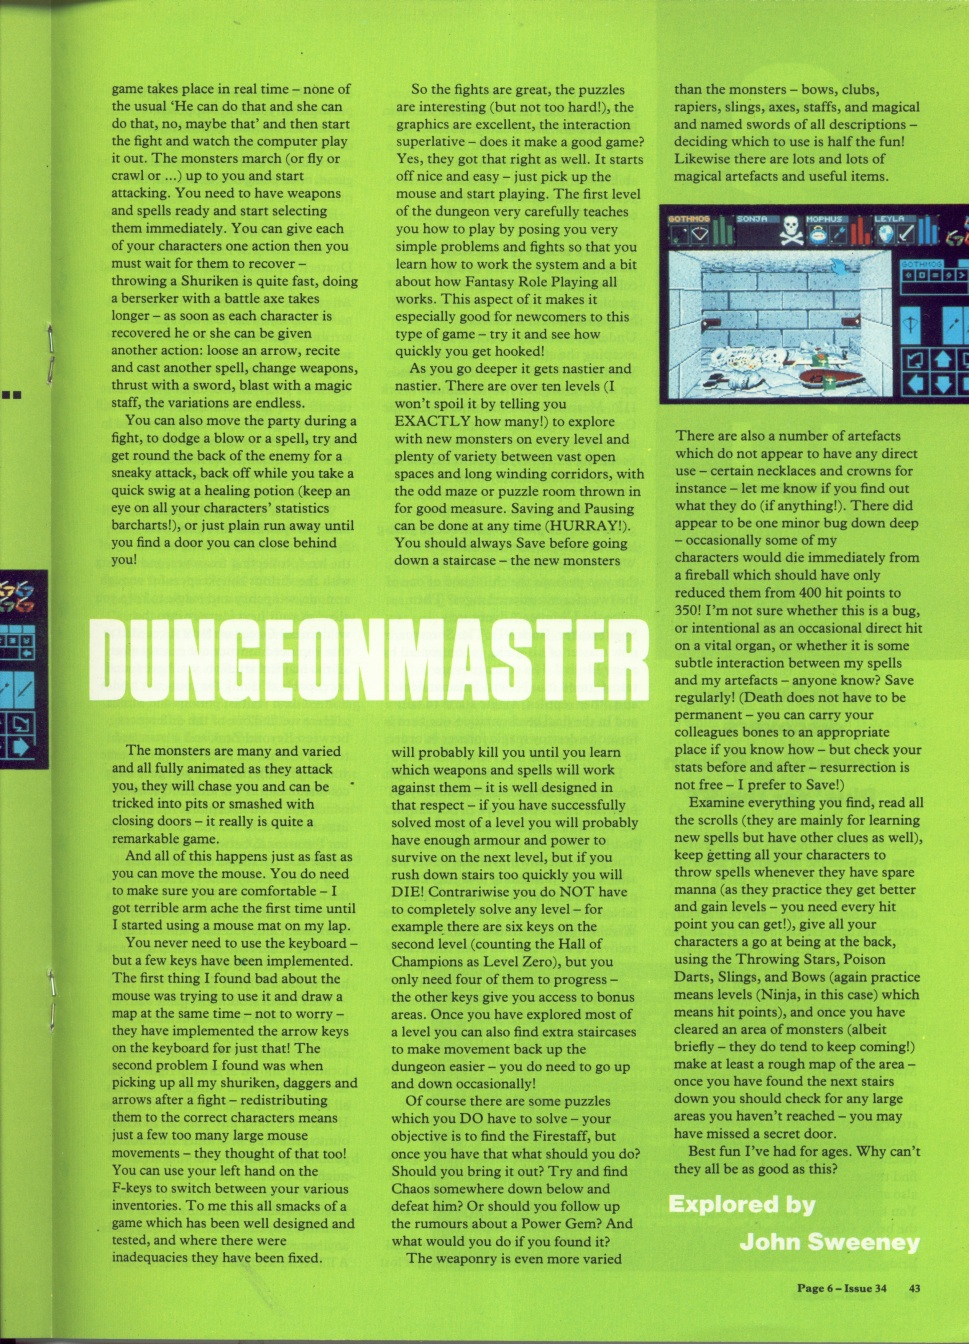 Dungeon Master for Atari ST Review published in British magazine 'Page 6', Issue #34 July-August 1988, Page 43